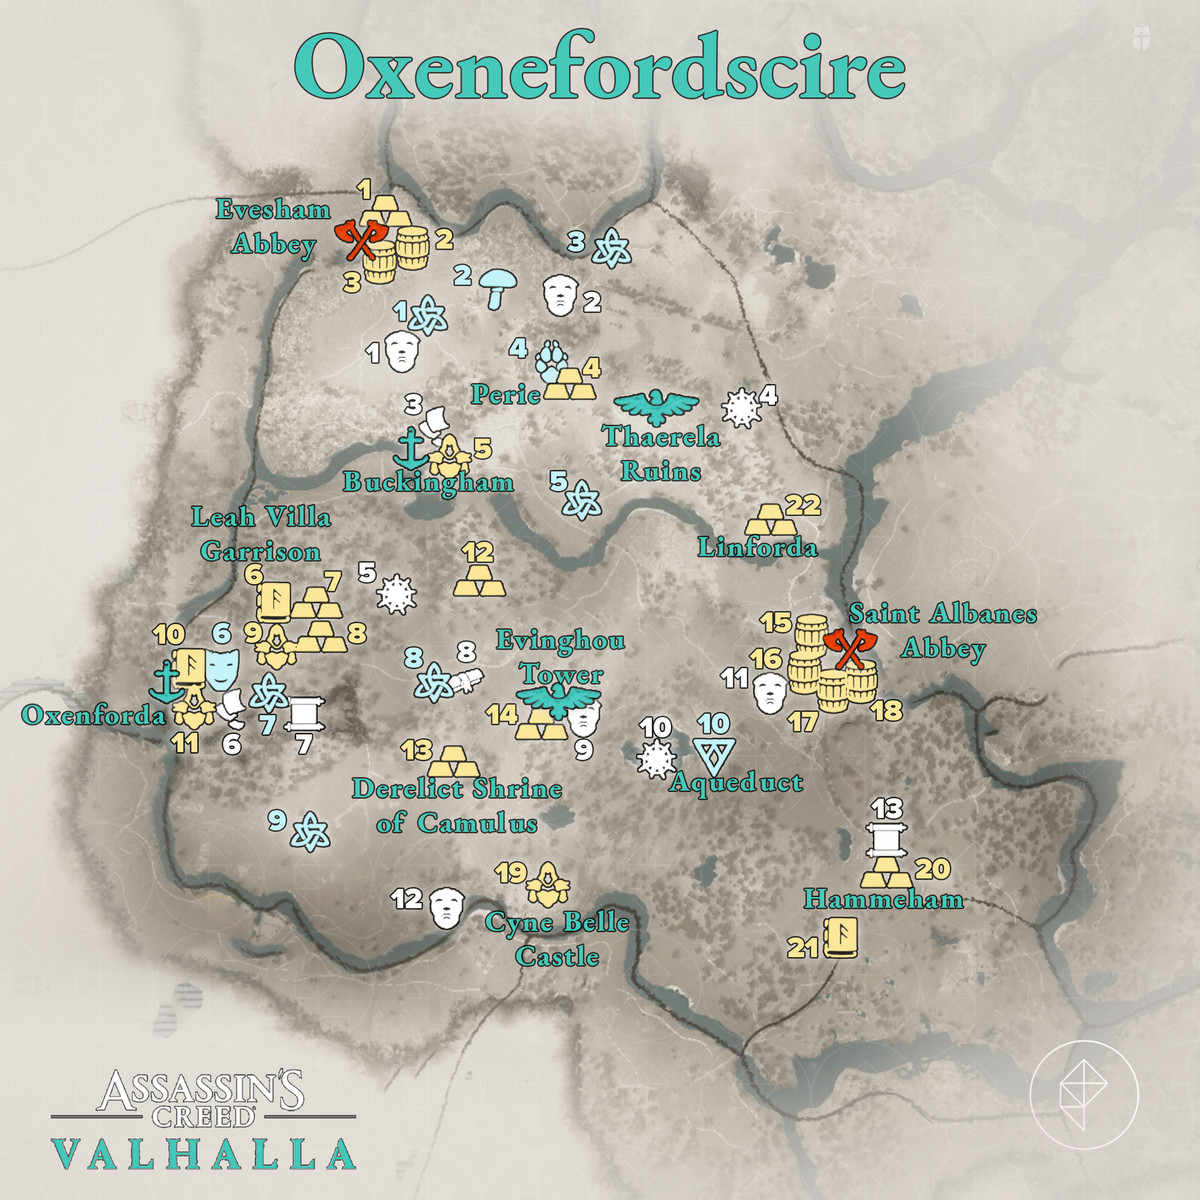 Oxenefordscire Wealth, Mysteries, and Artifacts locations map